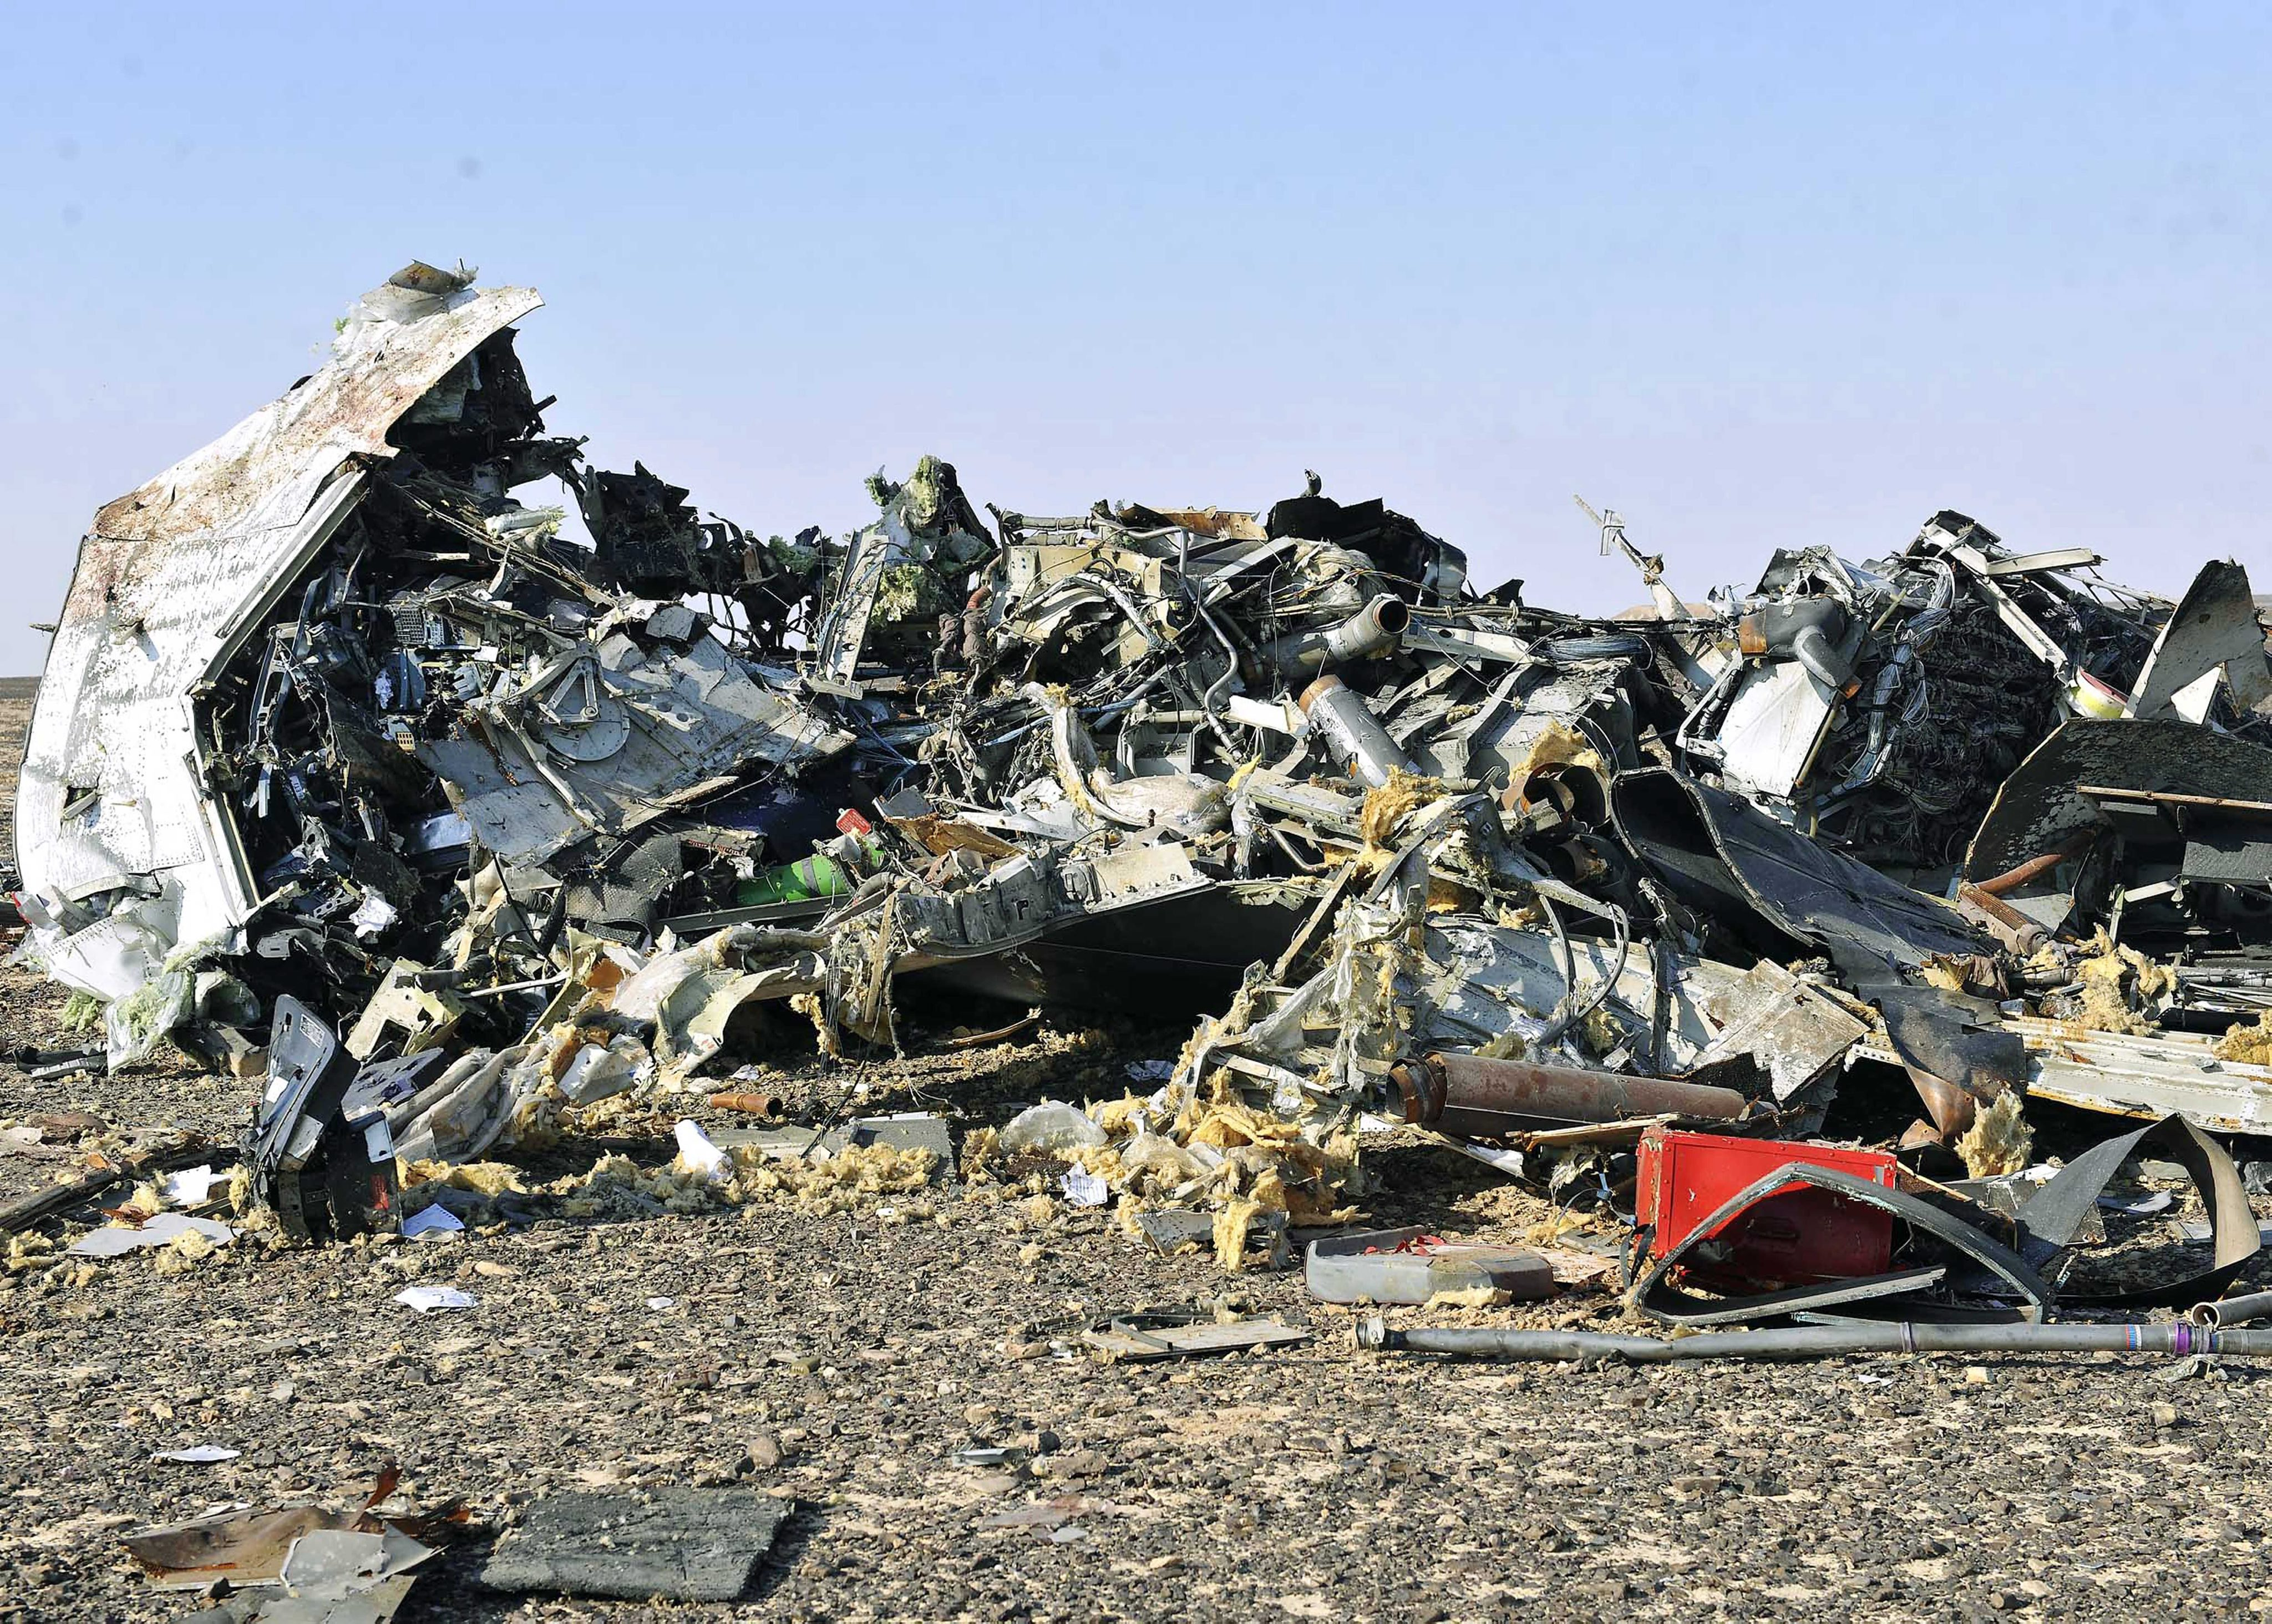 SIN02. Sinai (Egypt), .- Debris from crashed Russian jet lies strewn across the sand at the site of the crash, Sinai, Egypt, 31 October 2015. According to reports the Egyptian Government has dispatched more than 45 ambulances to the crash site of the Kogalymavia Metrojet Russian passenger jet, which disappeared from raider after requesting an emergency landing early 31 October, crashing in the mountainous al-Hasanah area of central Sinai. The black box has been recovered at the site. (Egipto) EFE/EPA/STR EGYPT OUT Authorities fear all on board crashed Russian jet dead